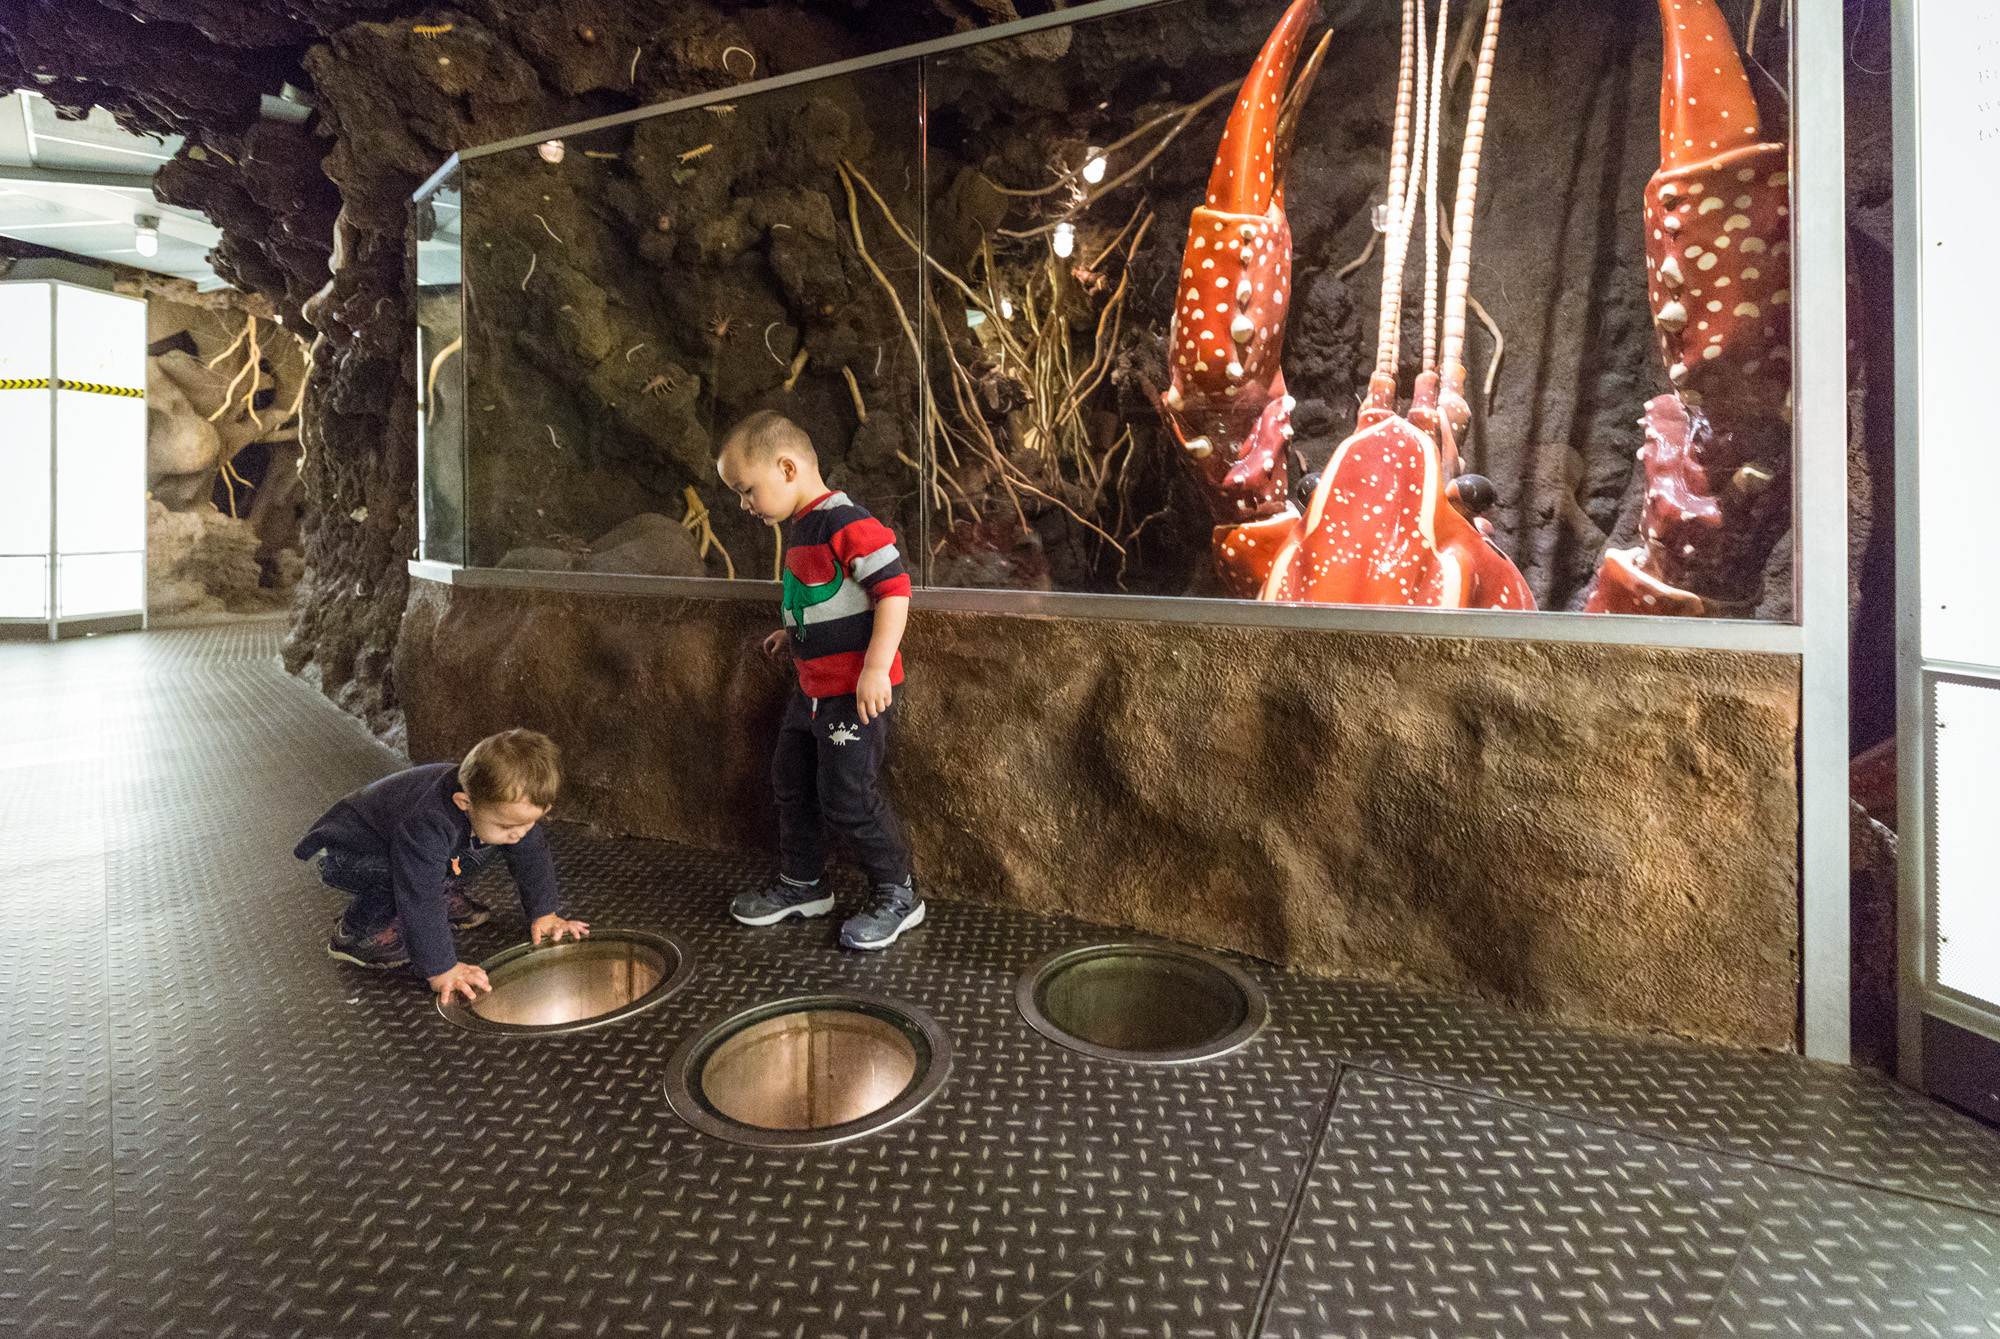 Two boys stand in front of a reproduction of a crayfish more than twice their size. The boy to the left crouches, looking down into a window cut in floor. Recreated soil and roots are visible behind them.